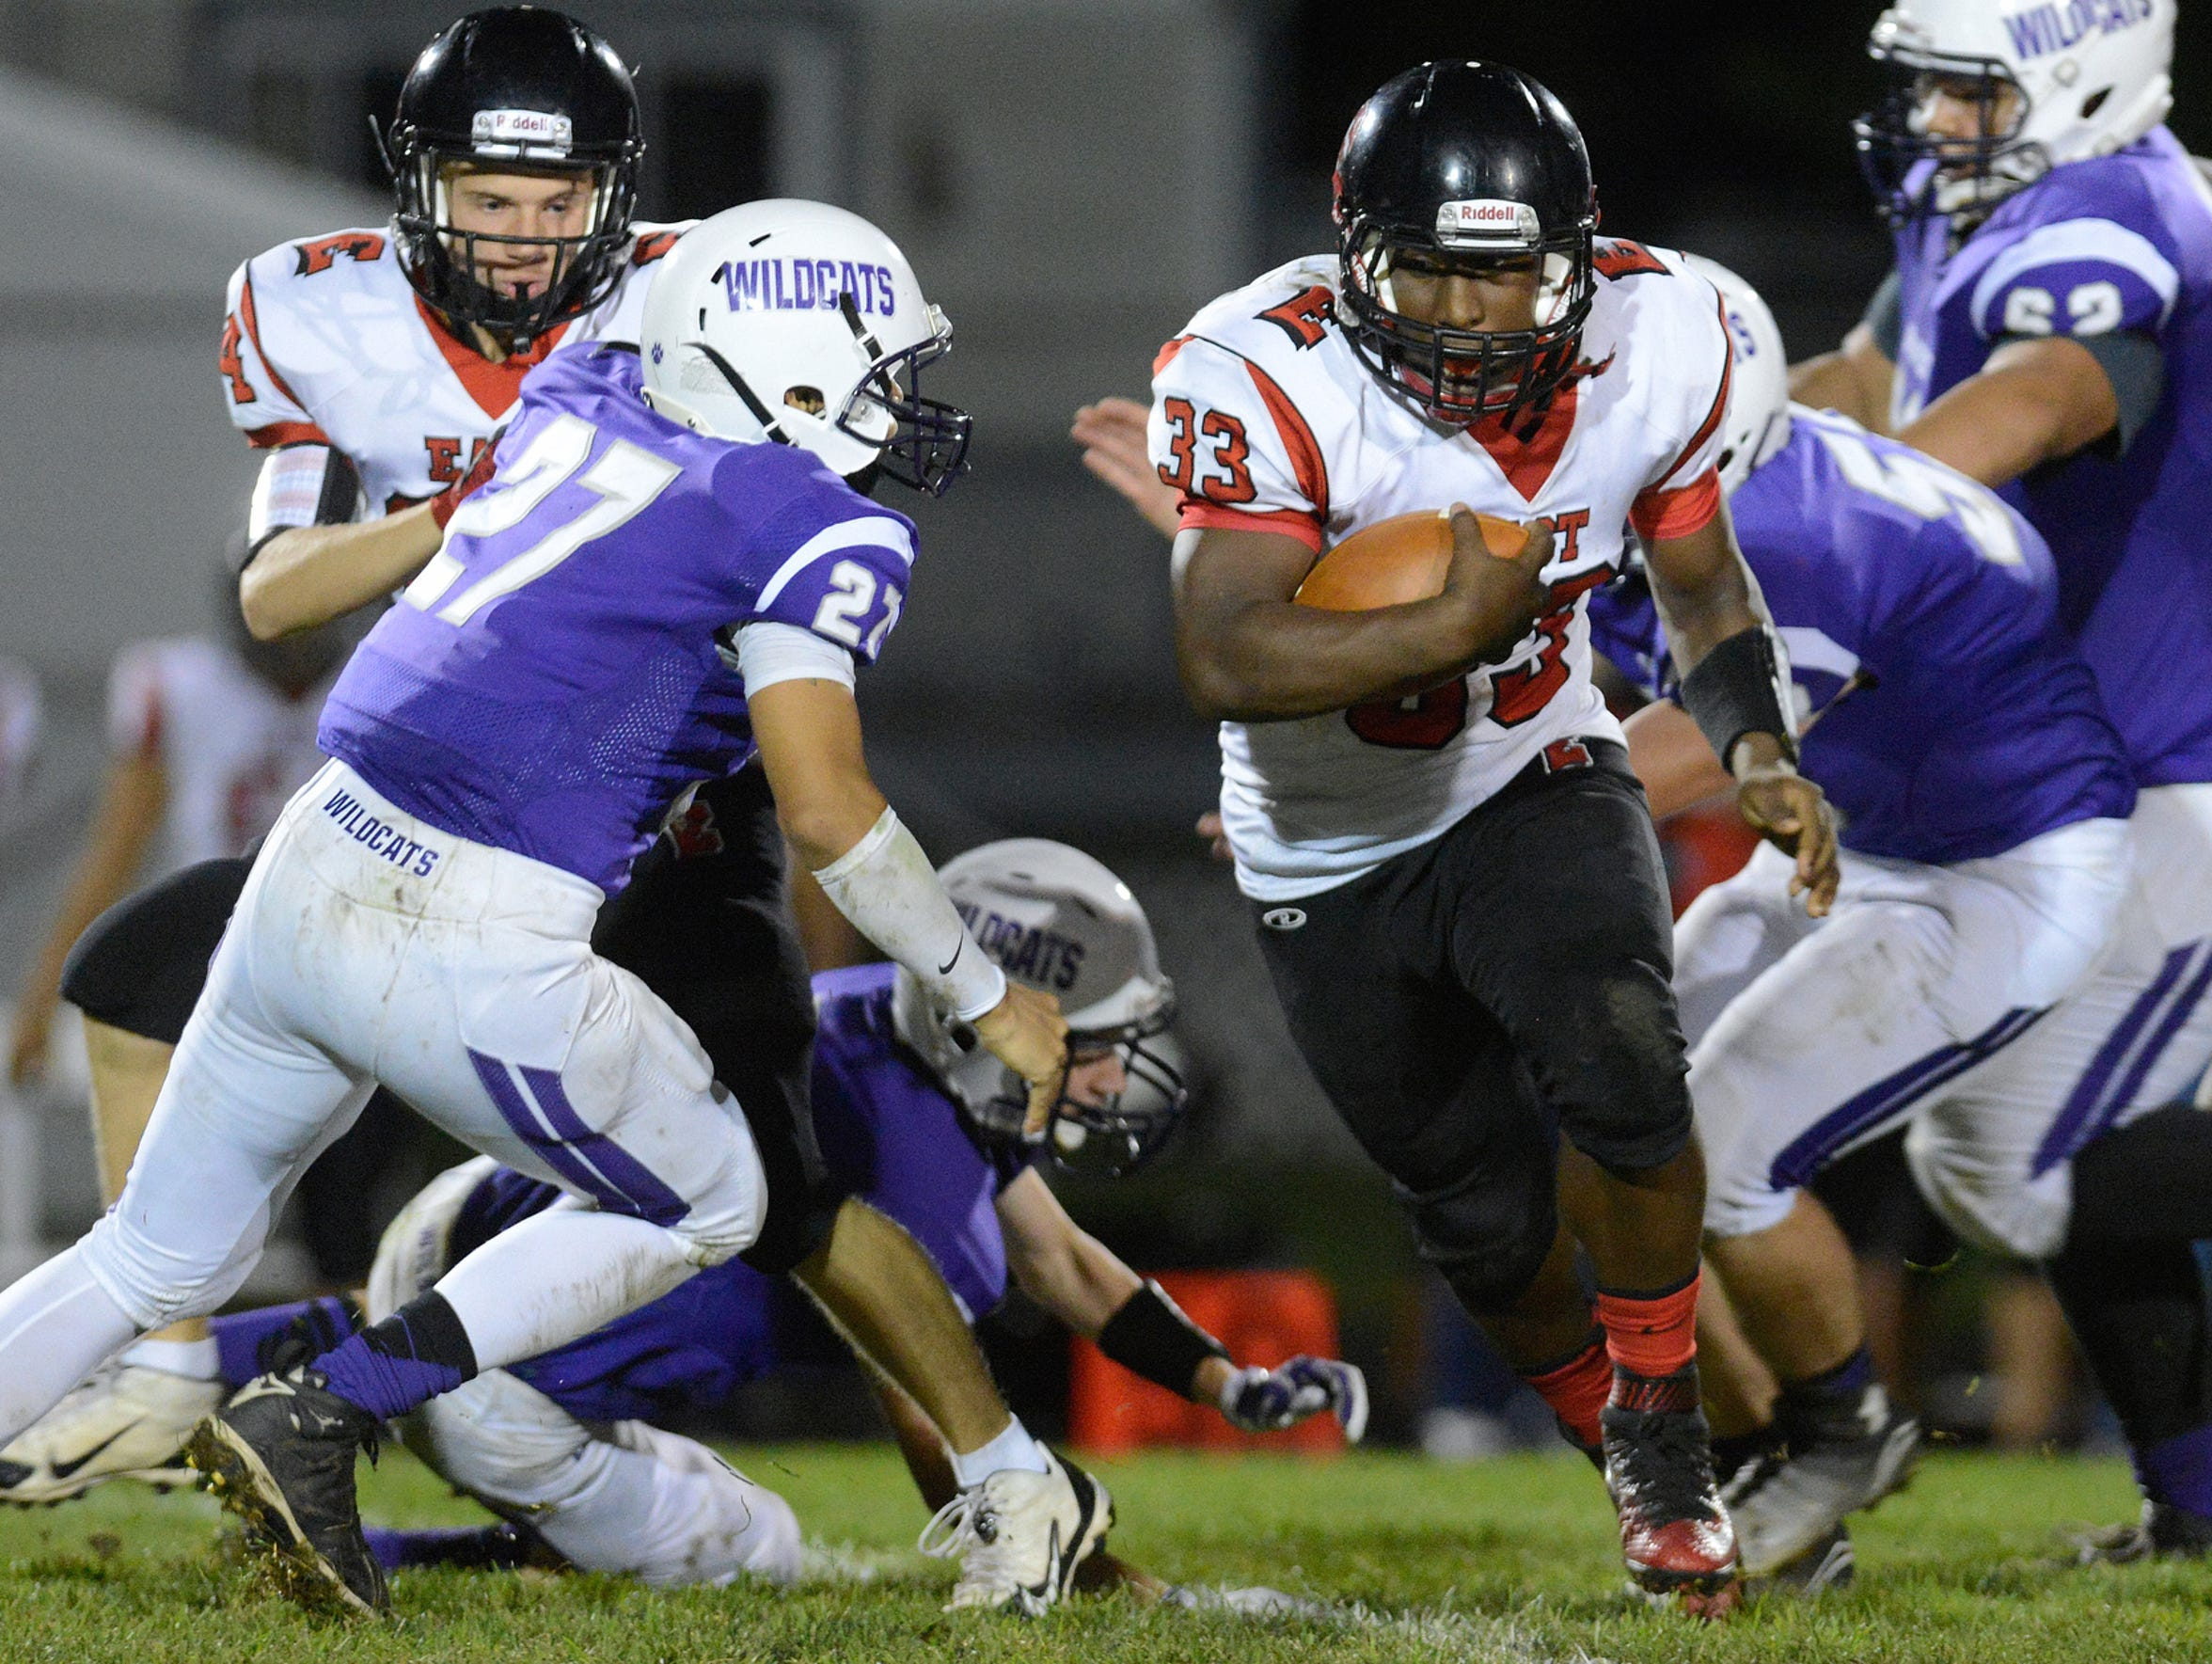 Green Bay East's Austin Short fights for more yardage